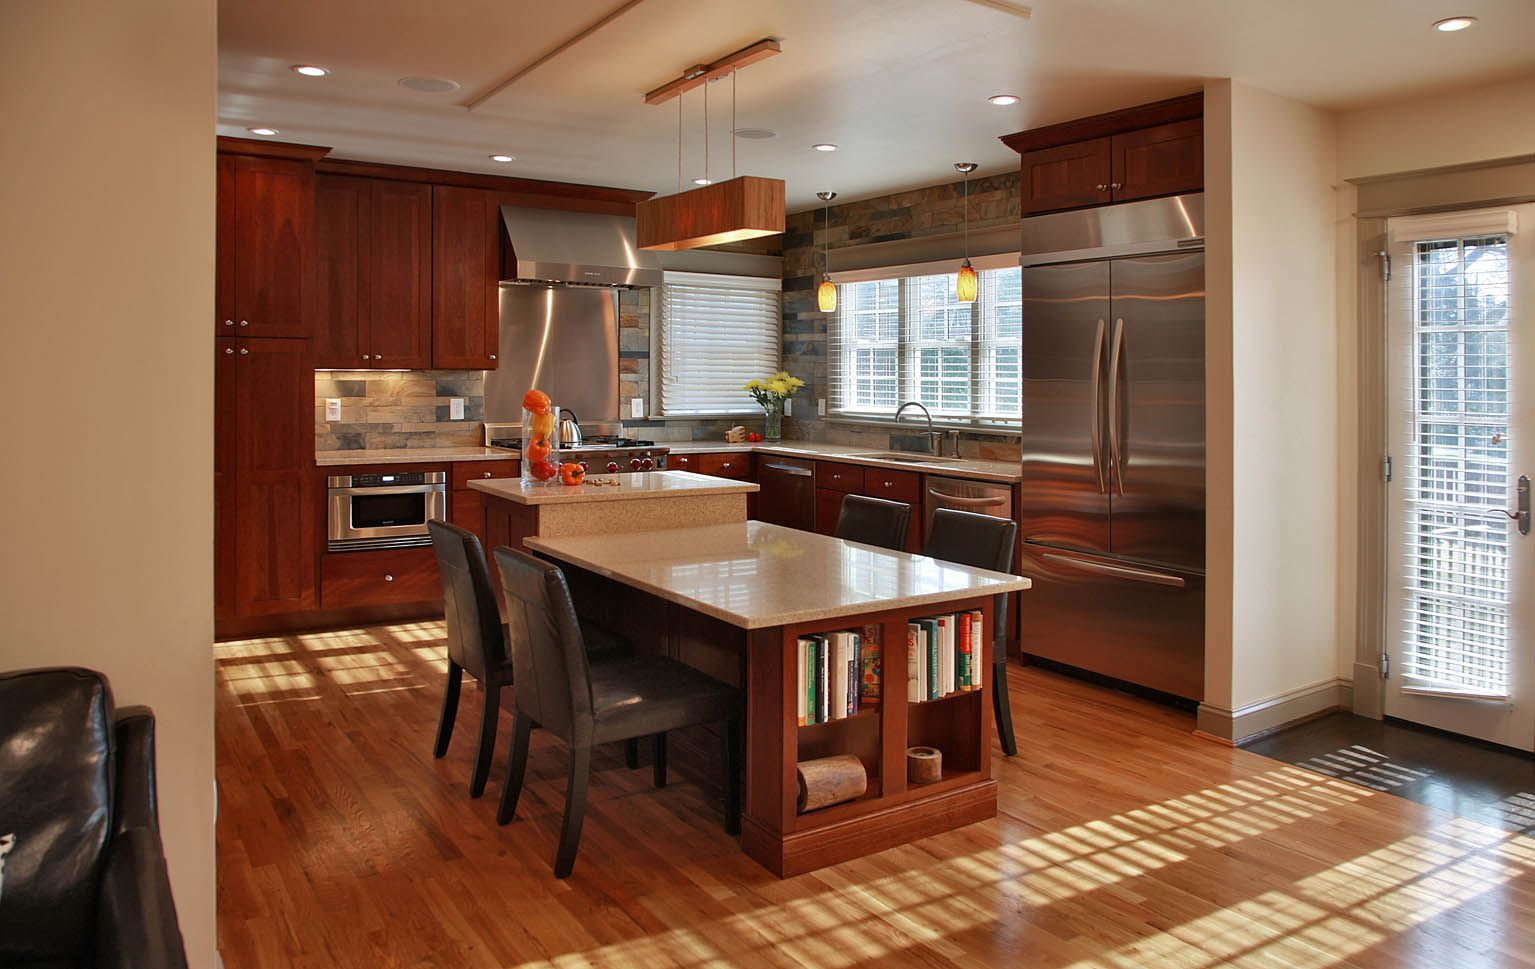 De space designs house dc the kitchen the heart of the home